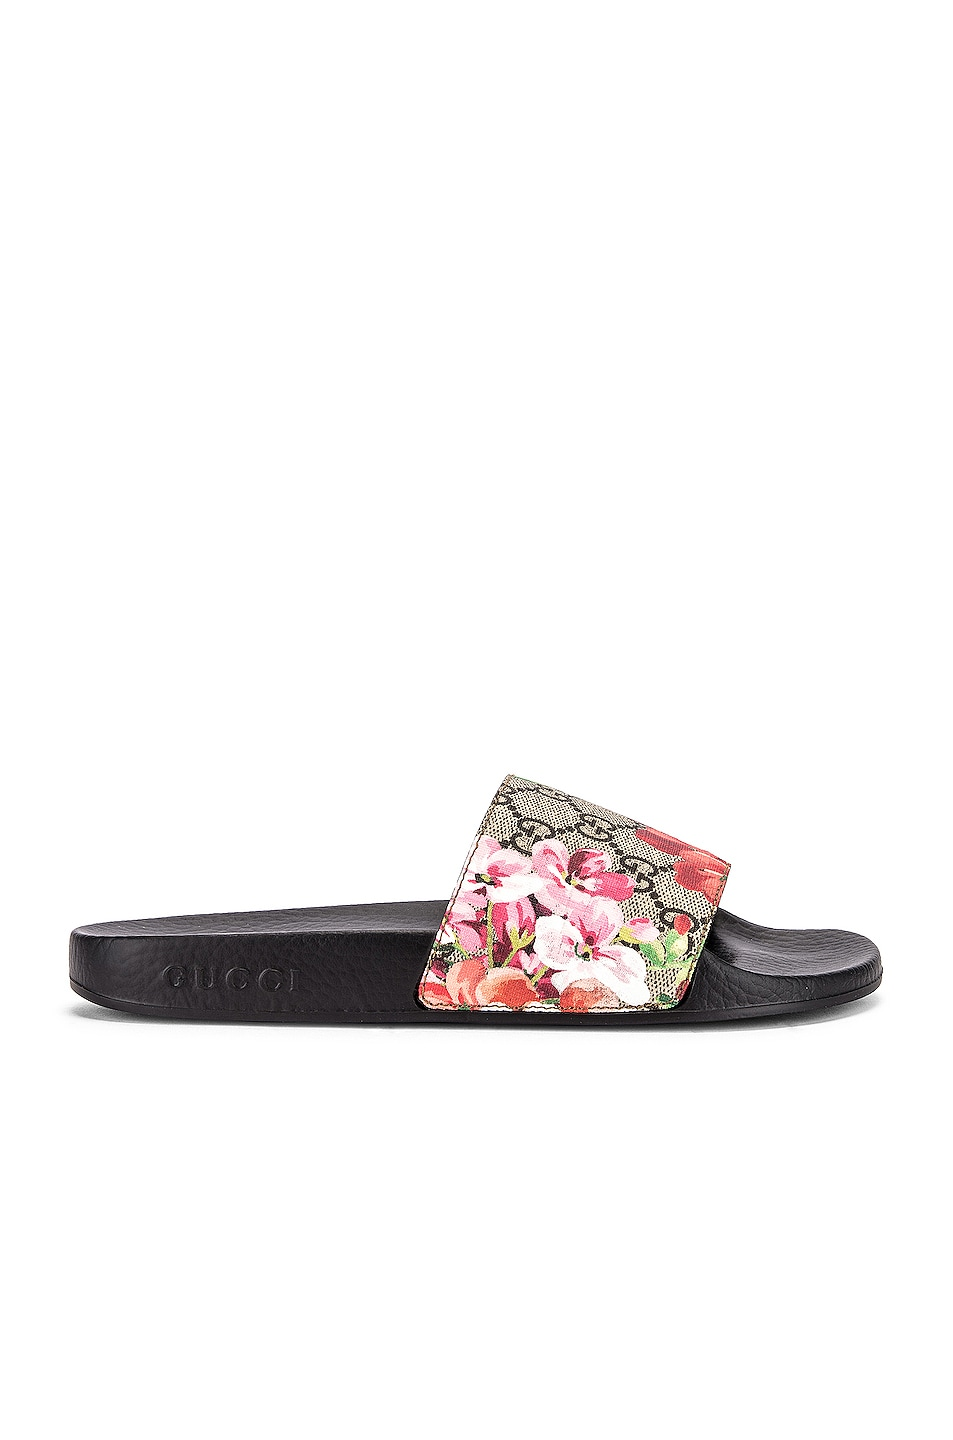 Image 2 of Gucci Pursuit GG Supreme Flora Slides in Beige Ebony & Multicolor